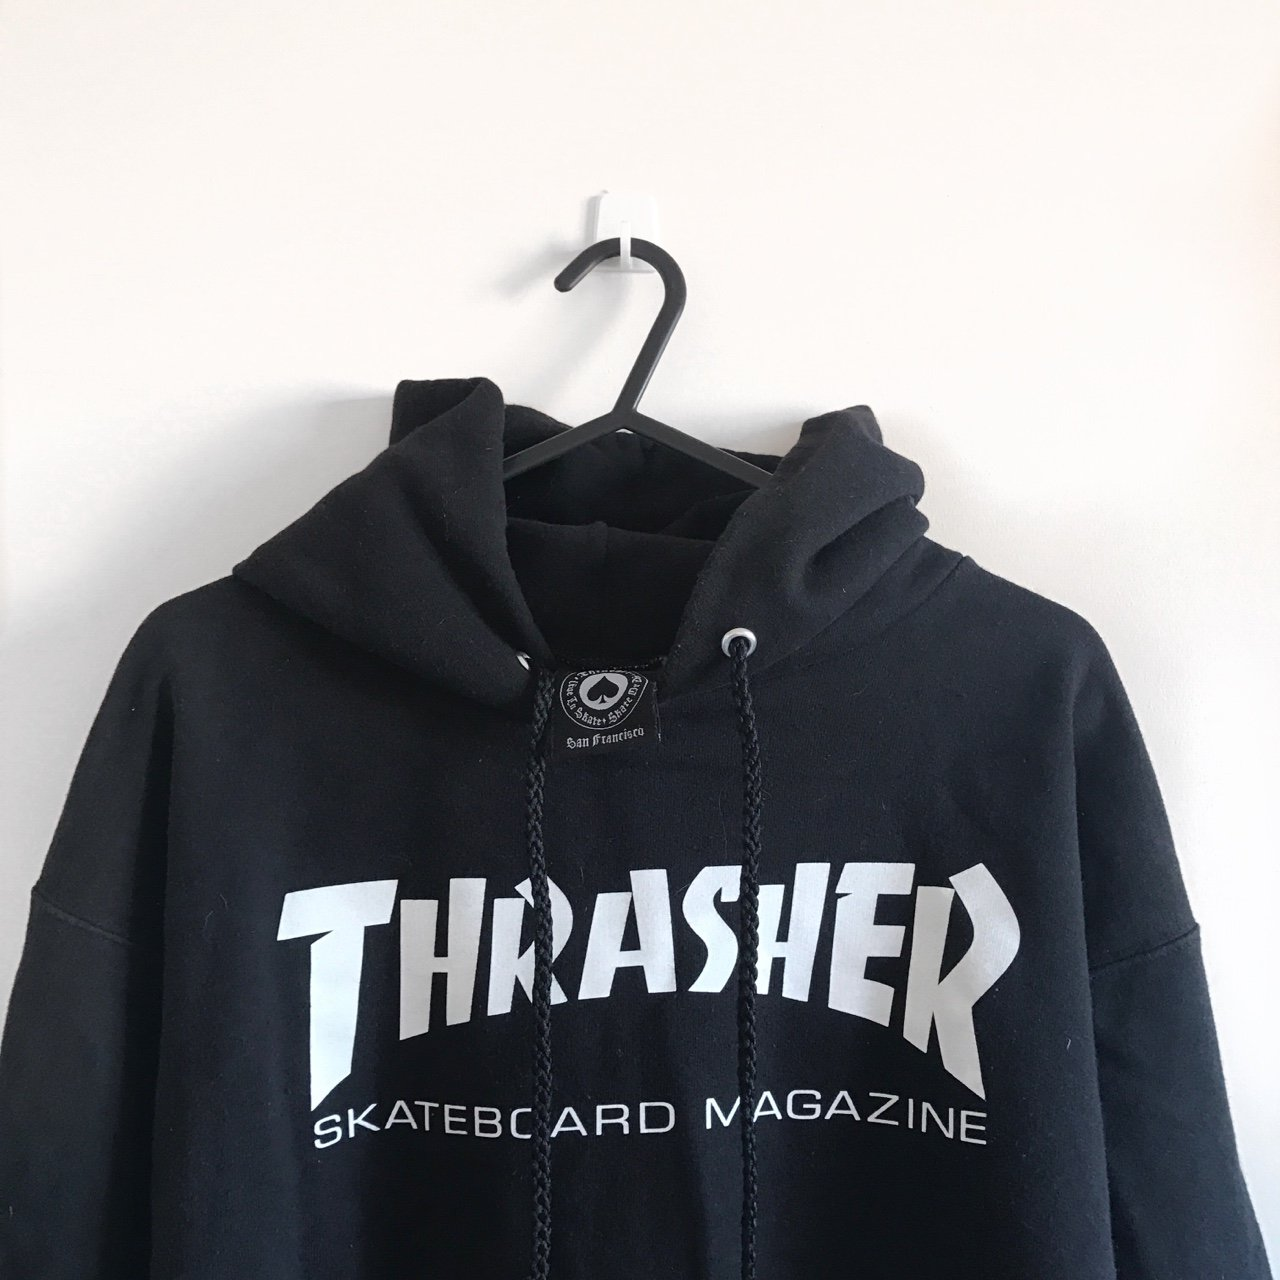 c28ada087b25 Thrasher skater hoodie⛸ 100% authentic brought from 2 - size - Depop